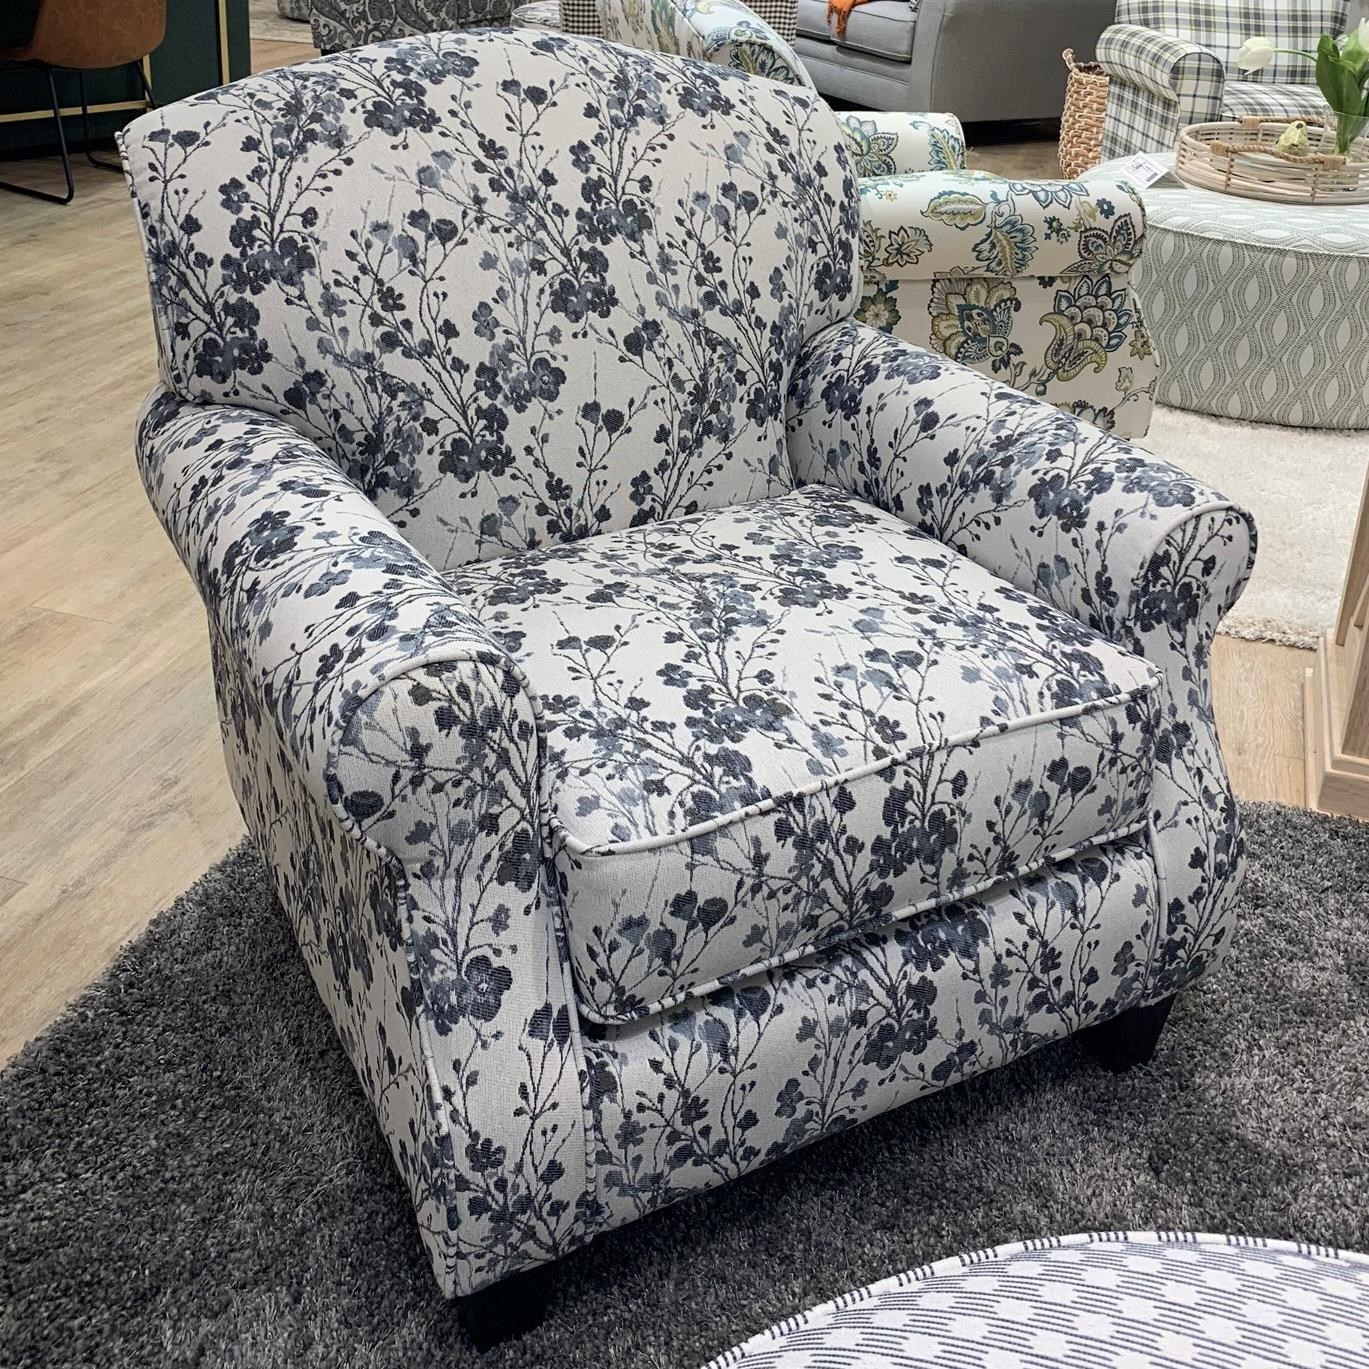 532 Accent Chair by VFM Signature at Virginia Furniture Market